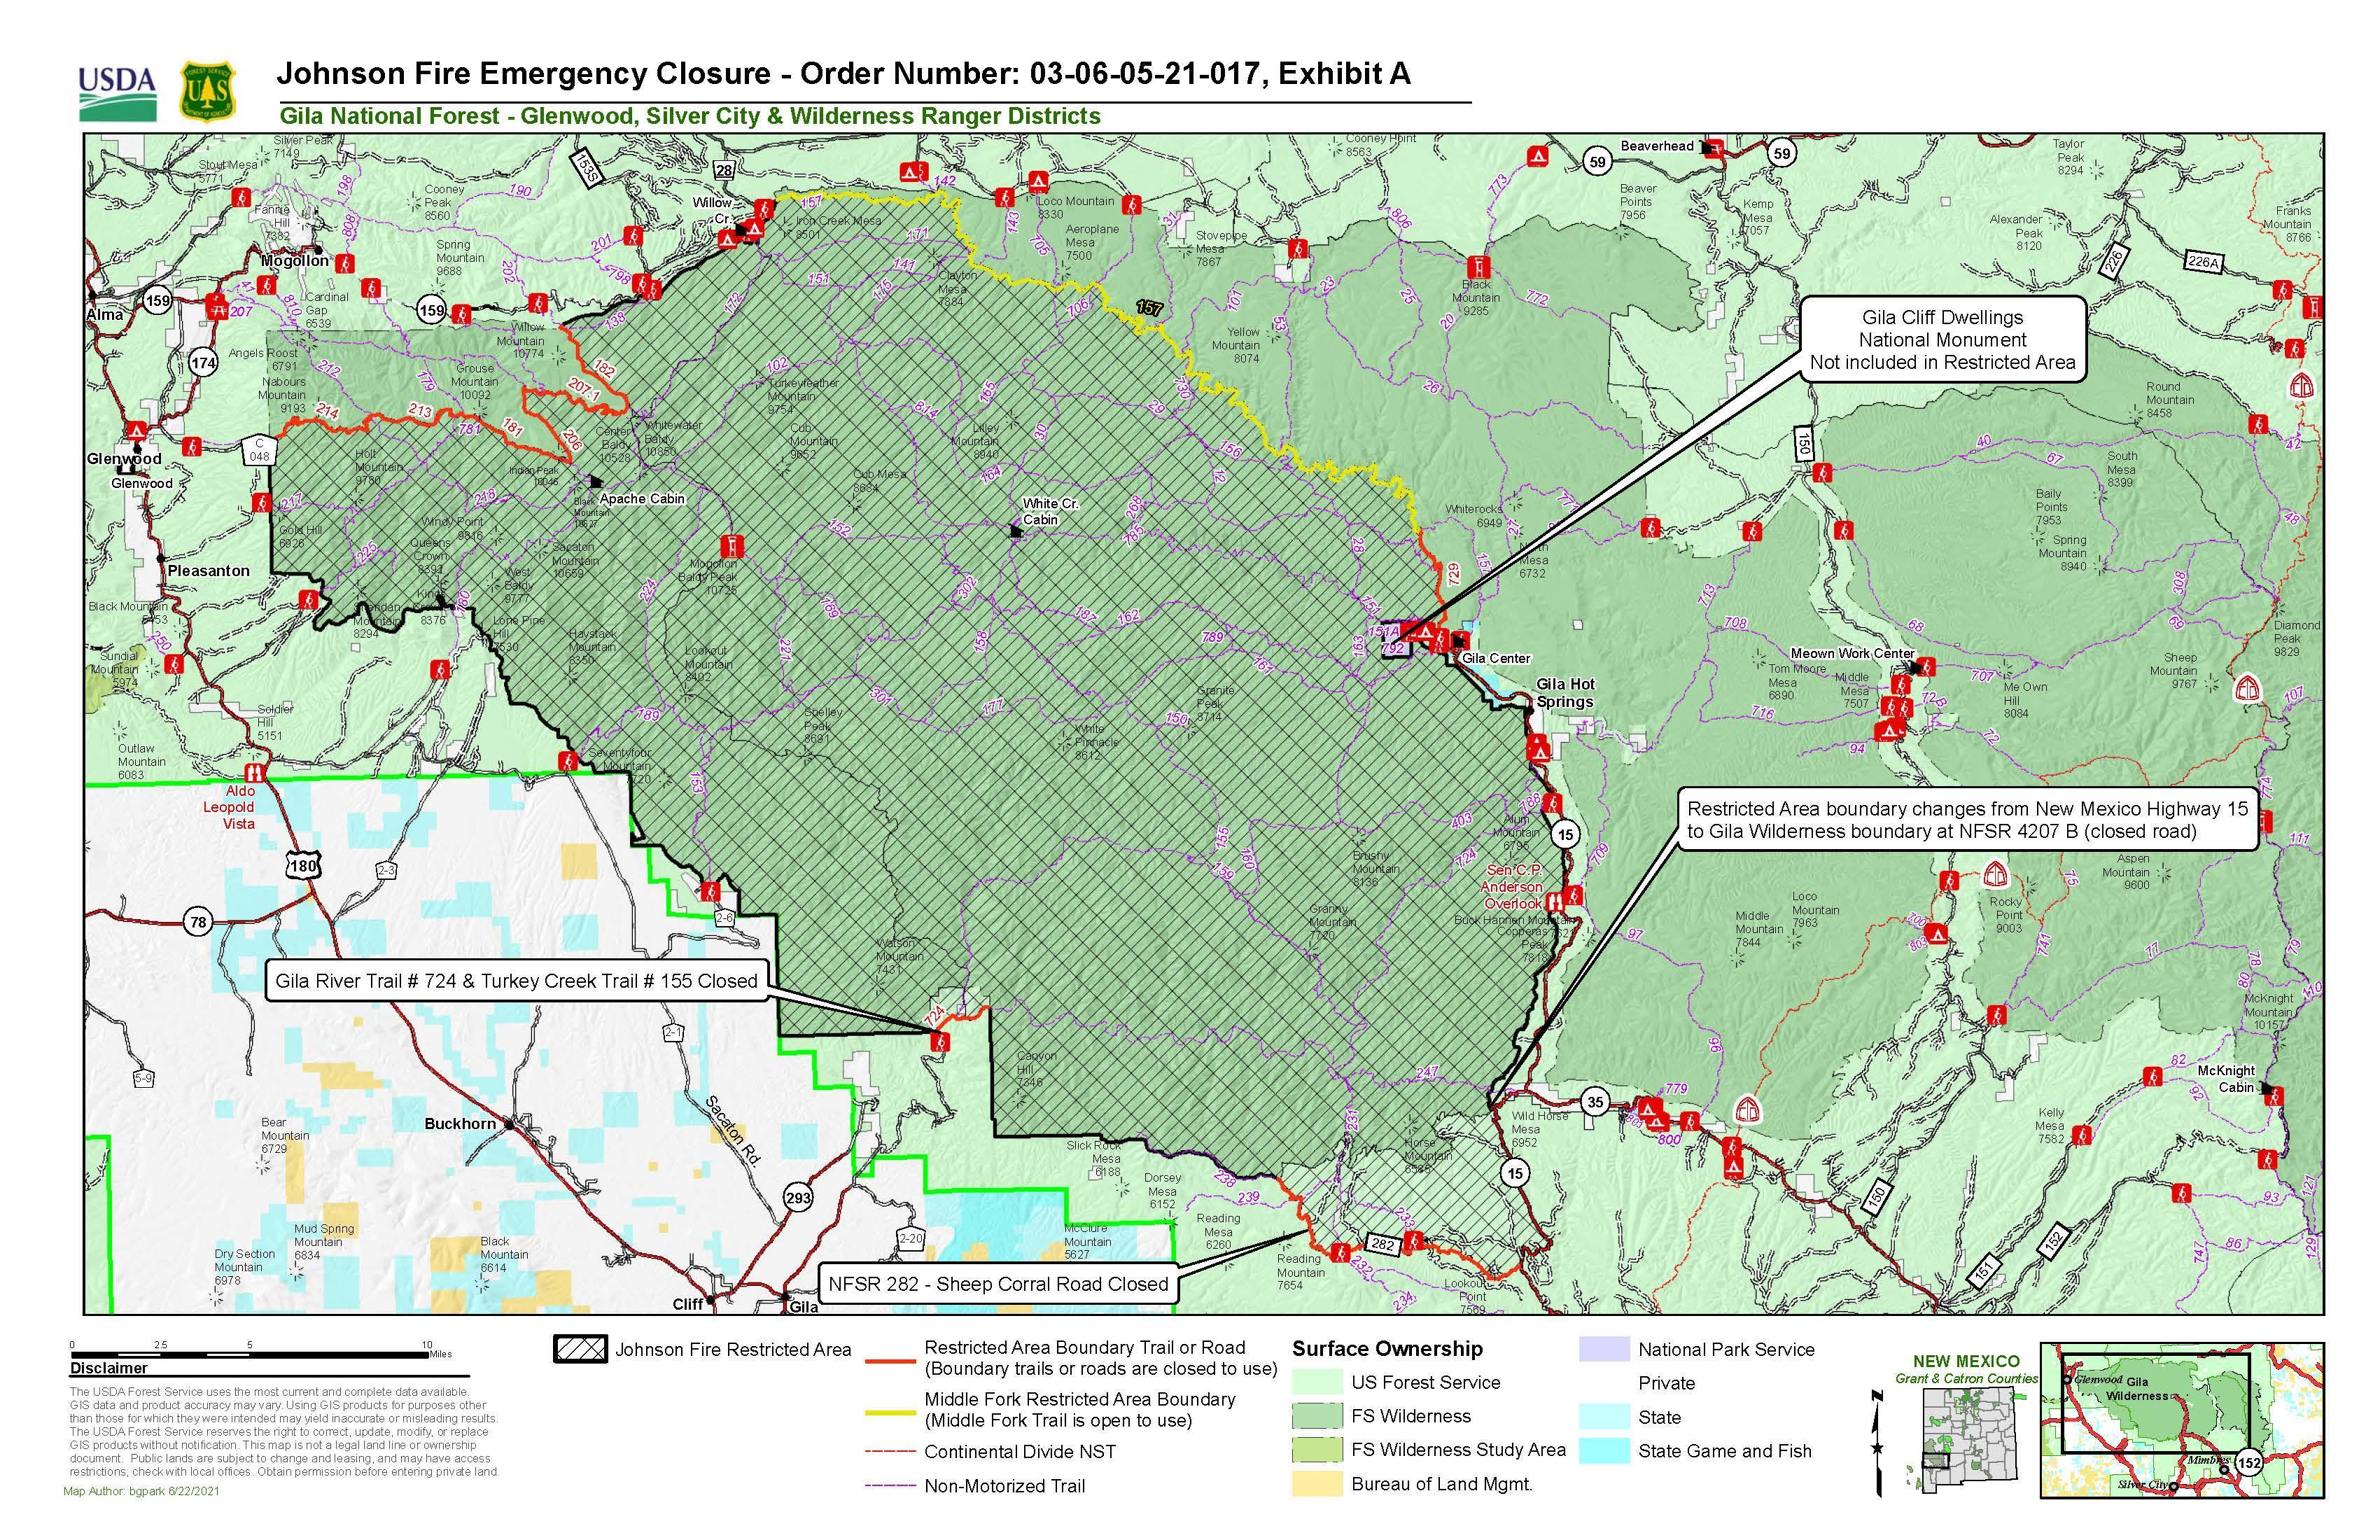 Map of closure area associated with Johnson Fire on wilderness district of Gila National Forest. This is associated with closure order# 03-06-05-21-017 signed June 22, 2021